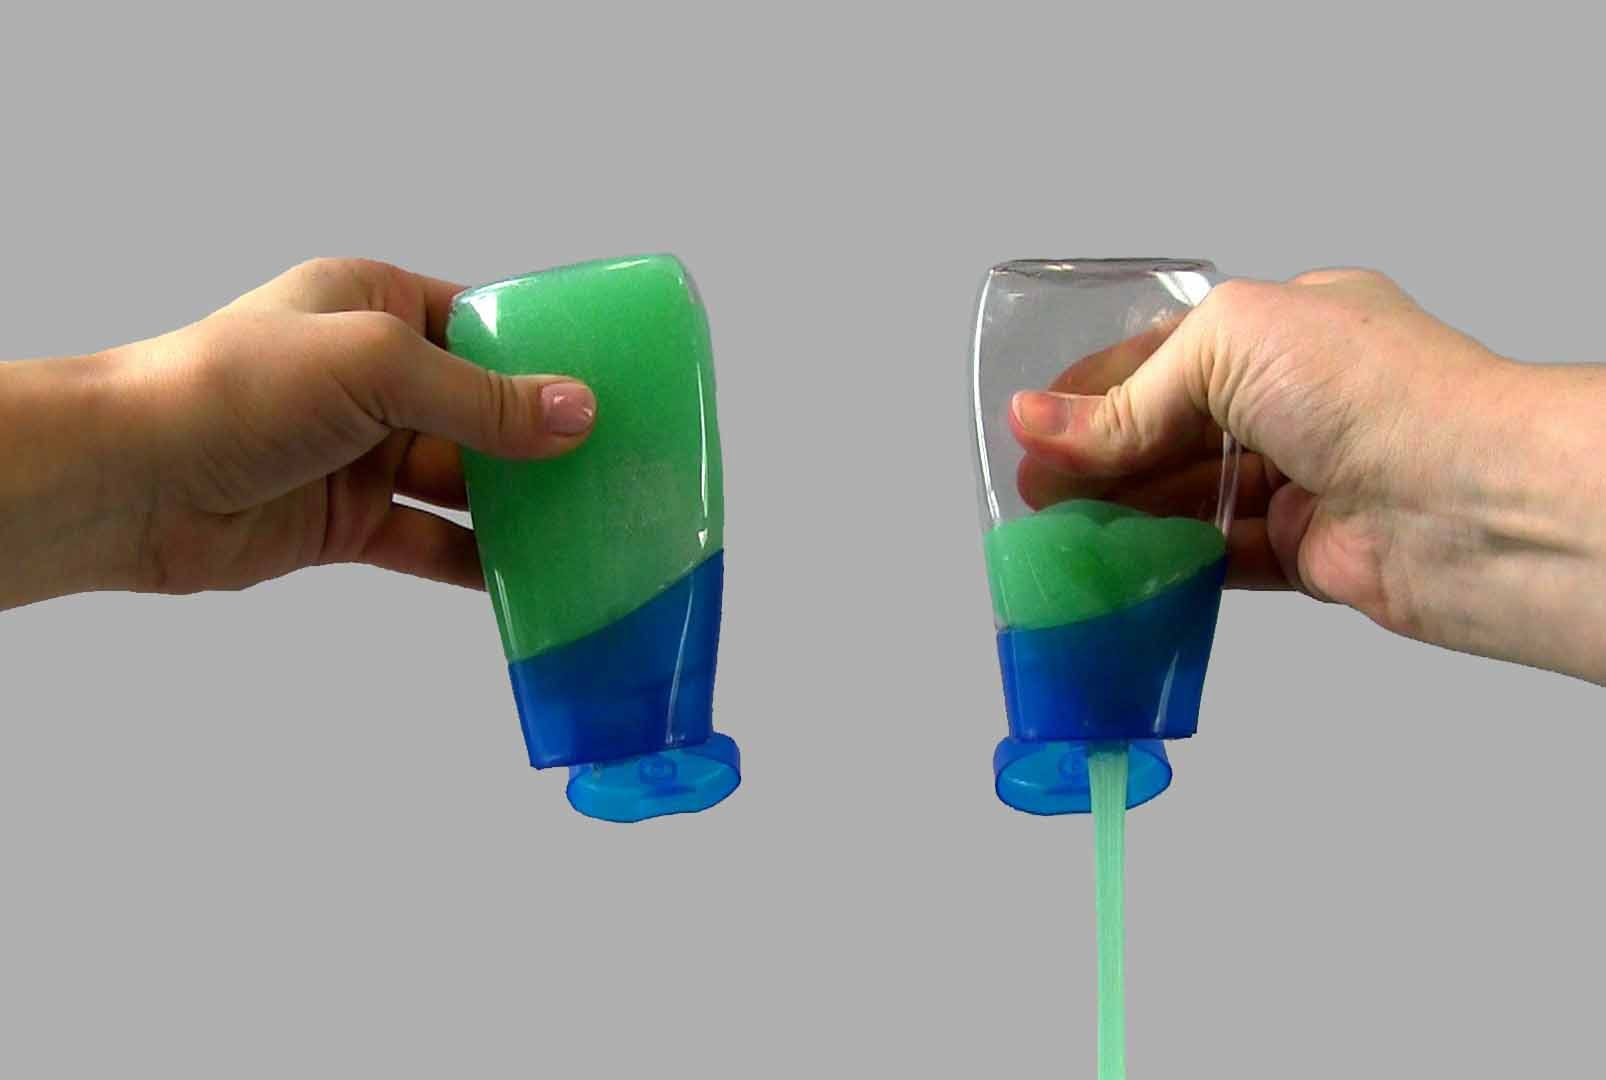 Toothpaste clings to the bottle on the left but flows freely from the one on the right, which is coated with LiquiGlide. The slippery coating is designed to prevent glue, paint, lotion and all sorts of substances from sticking to their containers.